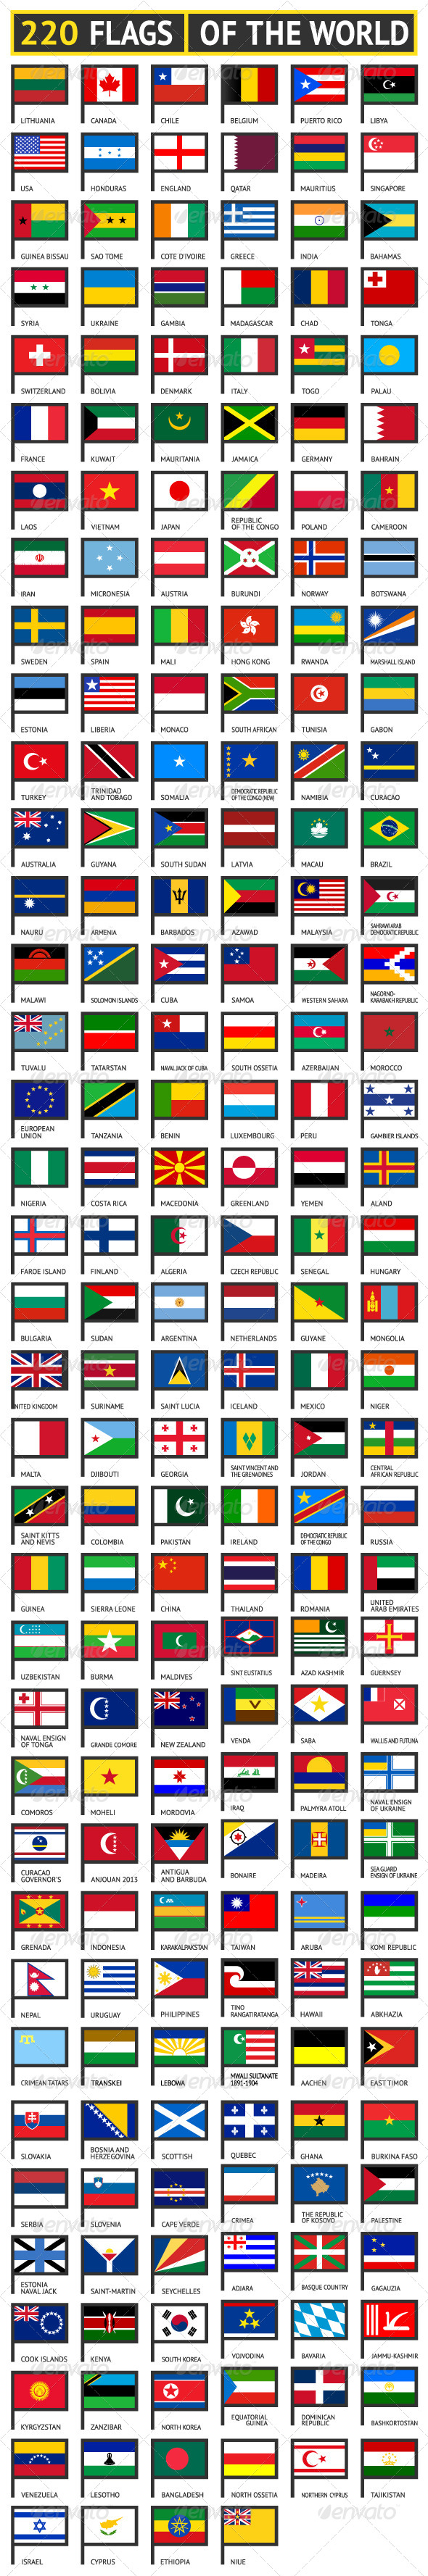 GraphicRiver 220 Flags of World 7570406